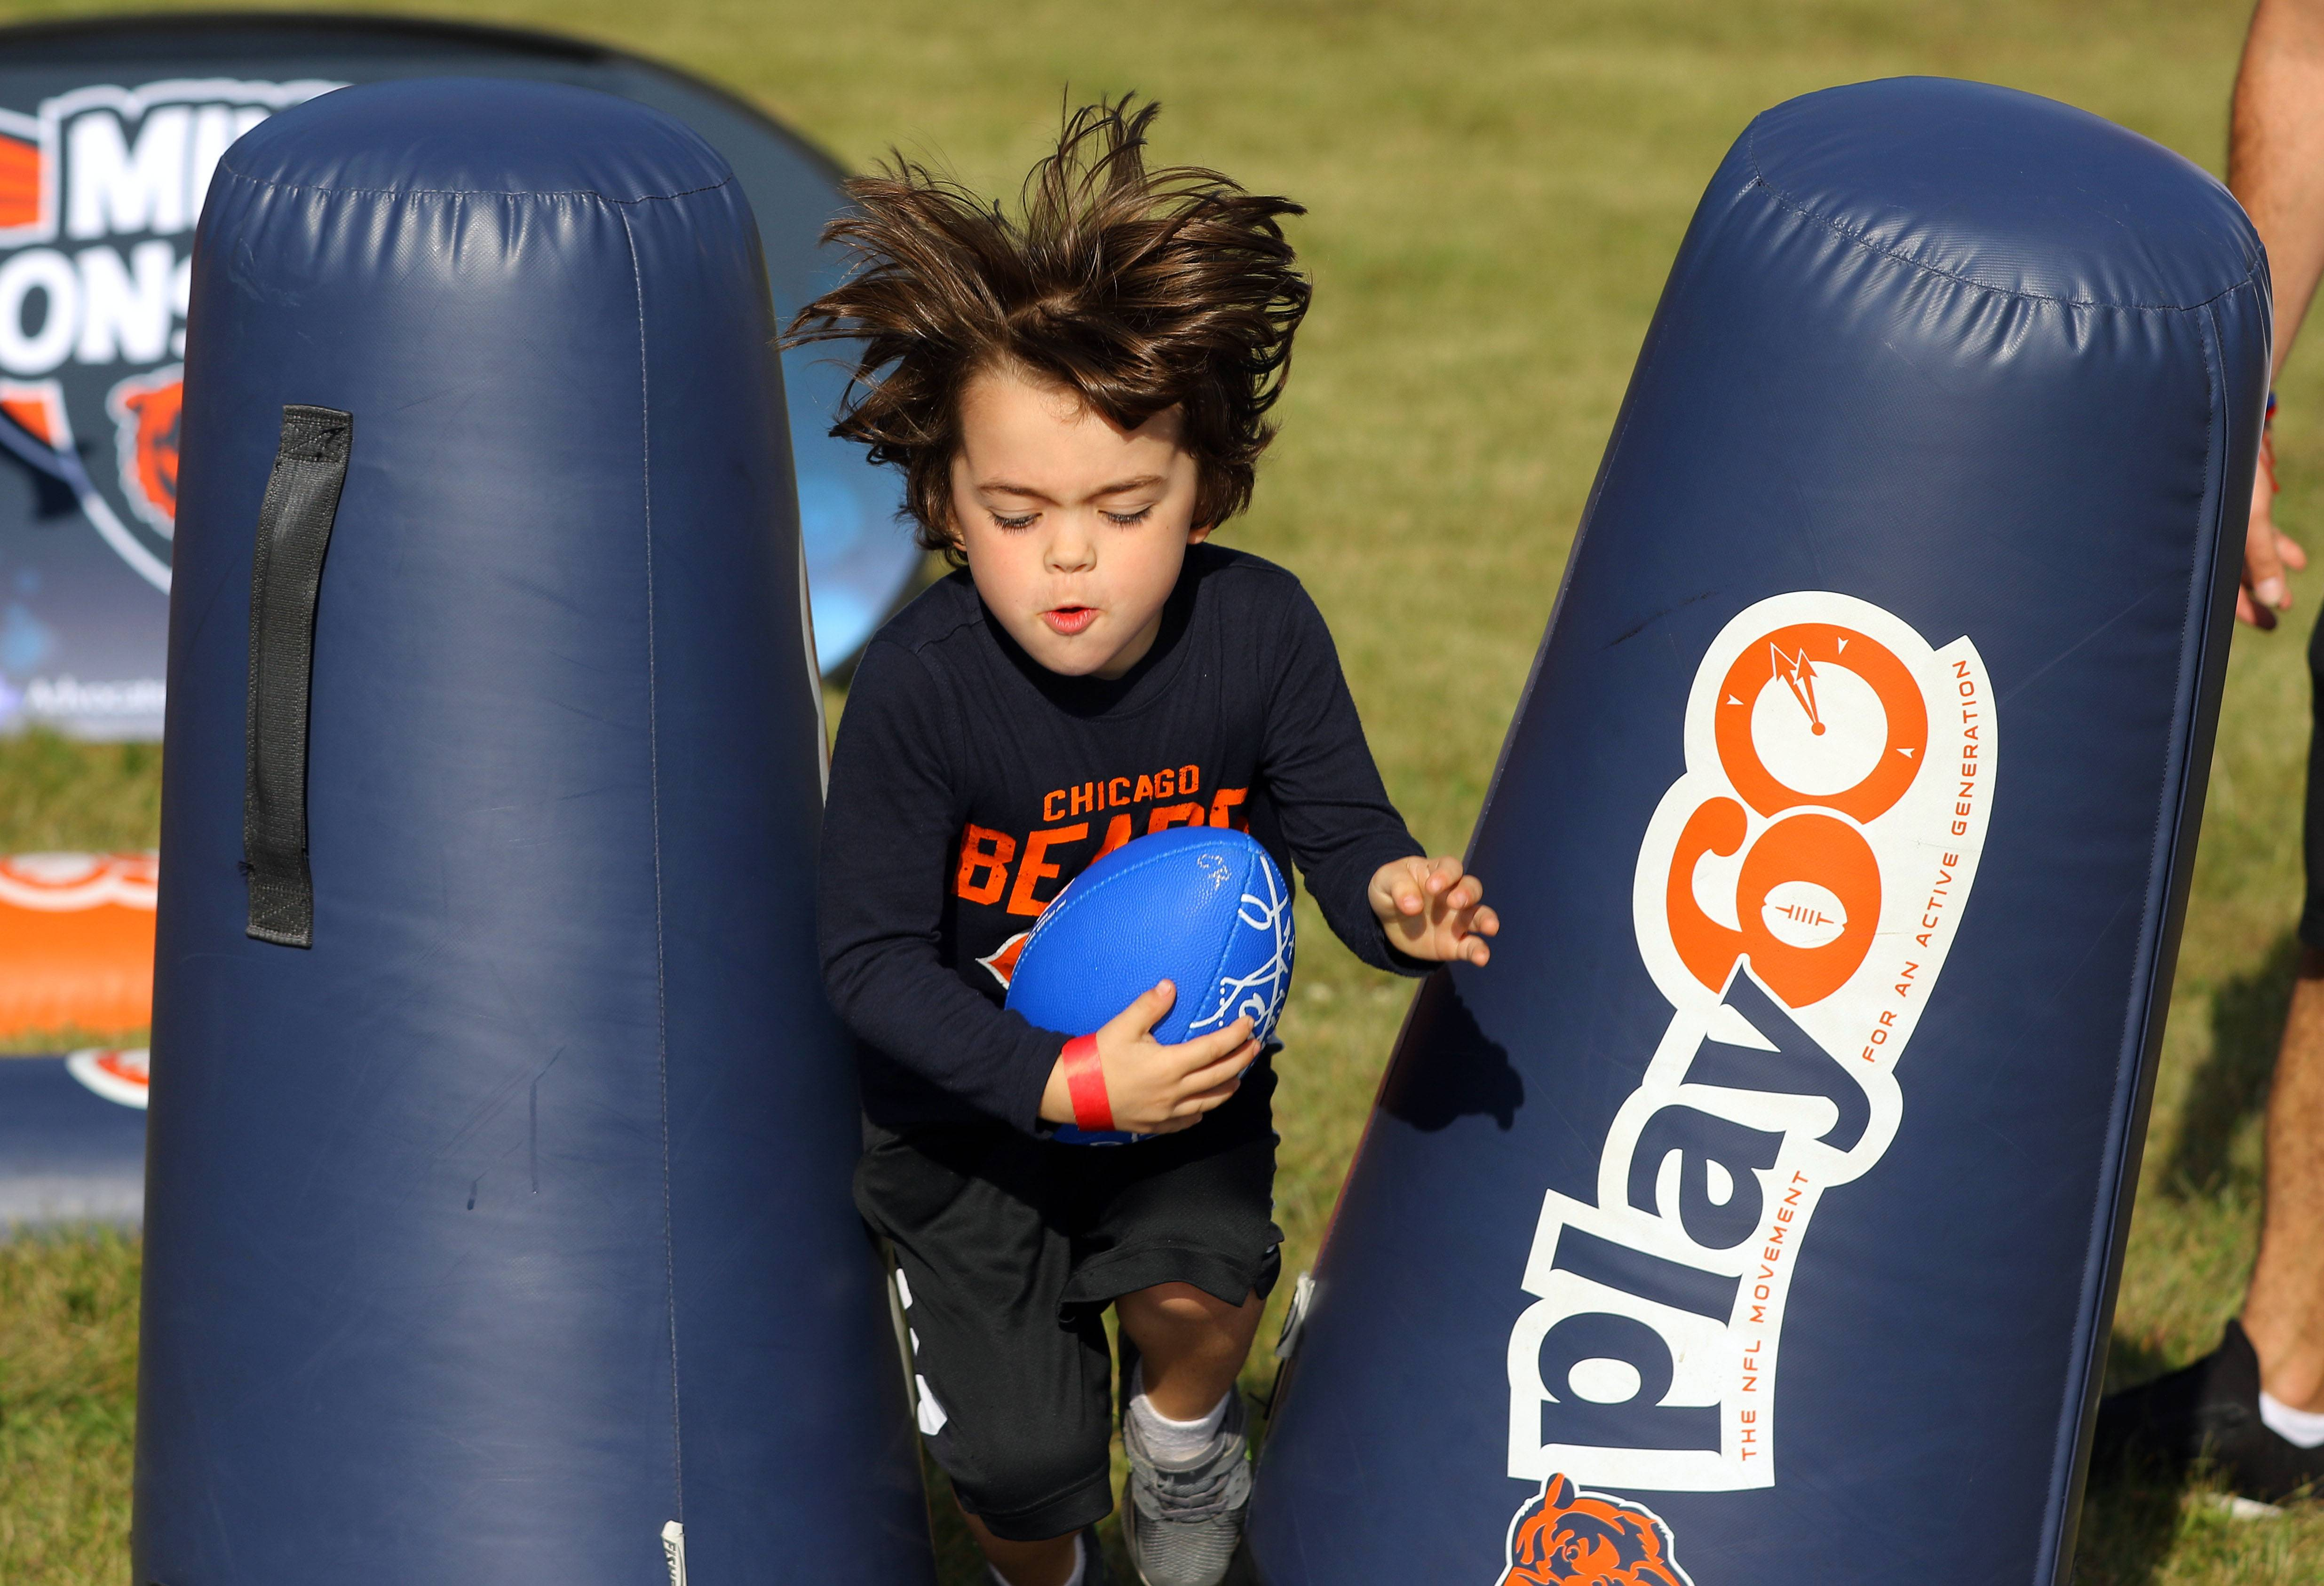 Steve Lundy/slundy@dailyherald.comLincoln Skupien, 5, of Lake Zurich runs through an obstacle course as Advocate Health Care teamed up with the Chicago Bears during a pep rally for breast cancer awareness at Advocate Condell Medical Center in Libertyville Tuesday.